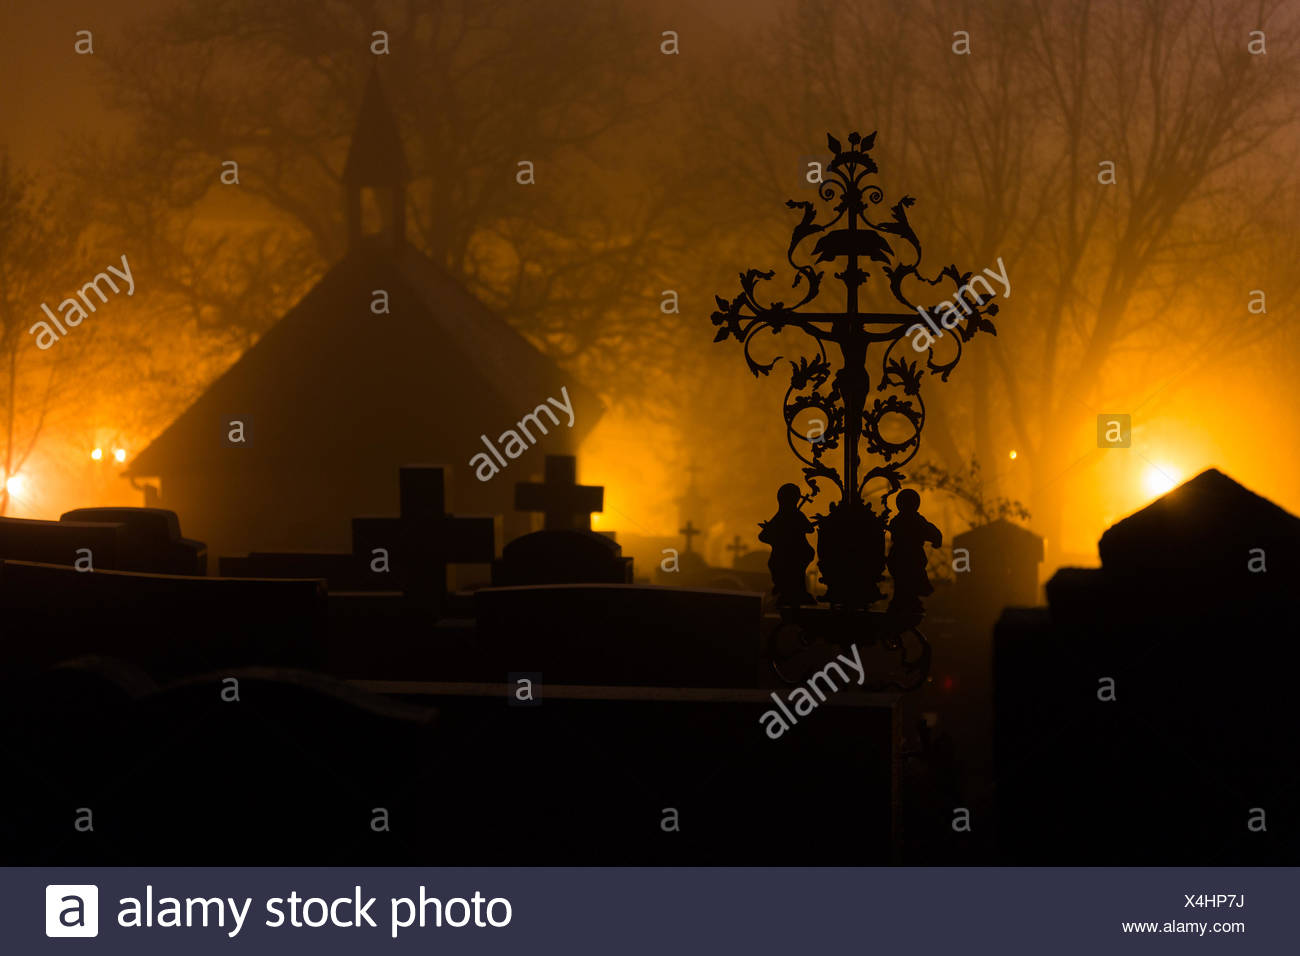 Silhouette Cemeteries At Graveyard Against Trees During Foggy Weather At Night - Stock Image